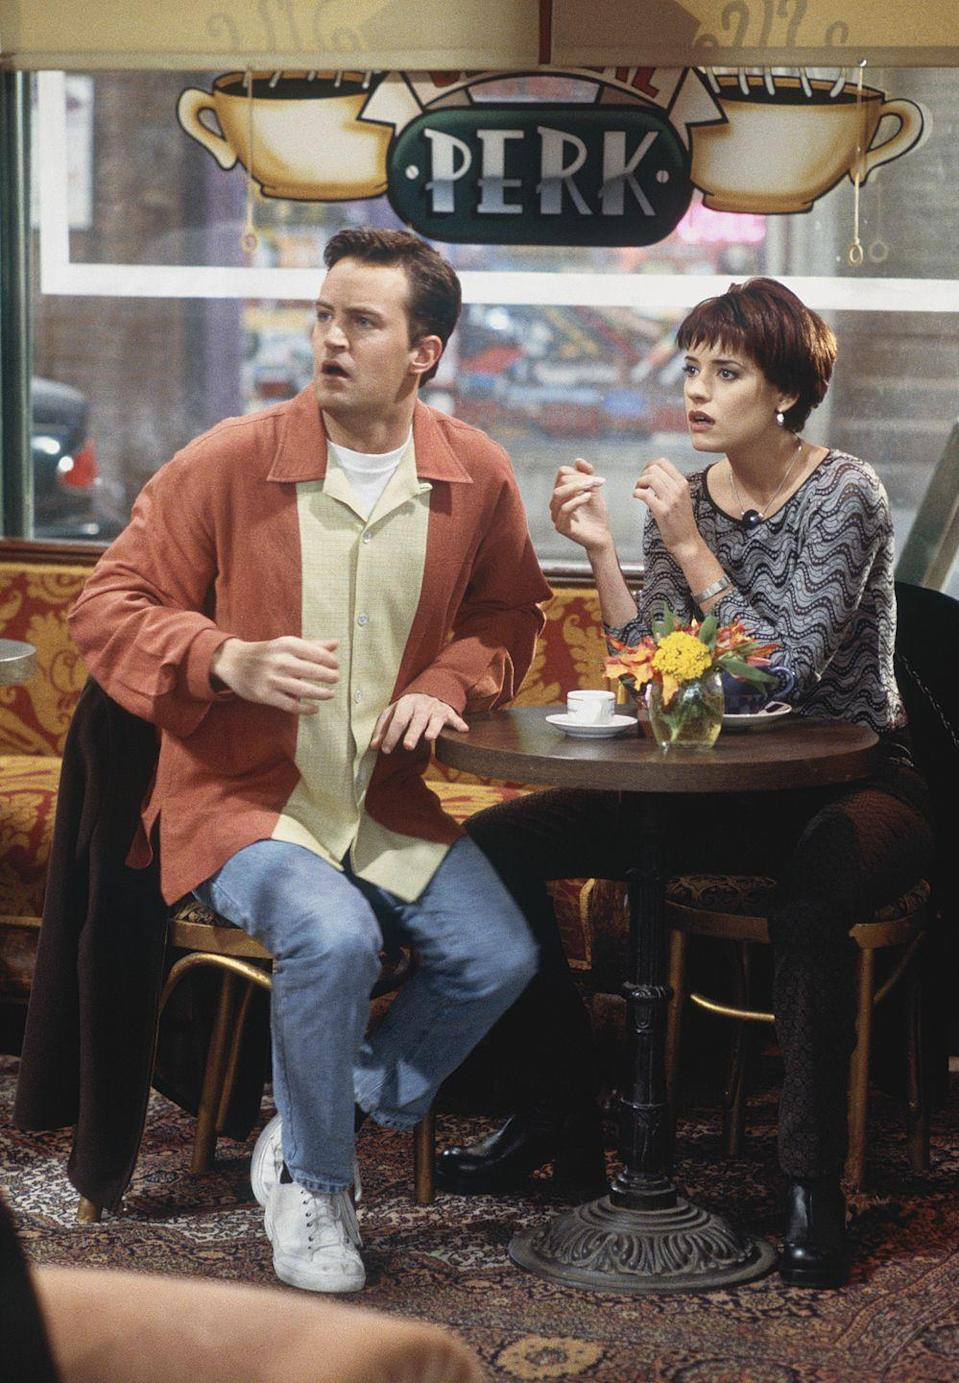 <p>When Paget Brewster joined <em>Friends</em> for a multi-episode story arch as Joey (and Chandler's) girlfrienxd Kathy, she was fairly new in Hollywood. Since then, the actress has had stints on TV shows like <em>Criminal Minds, Community</em>, <em>Law and Order: Special Victims Unit</em>, and <em>Modern Family</em>. </p>